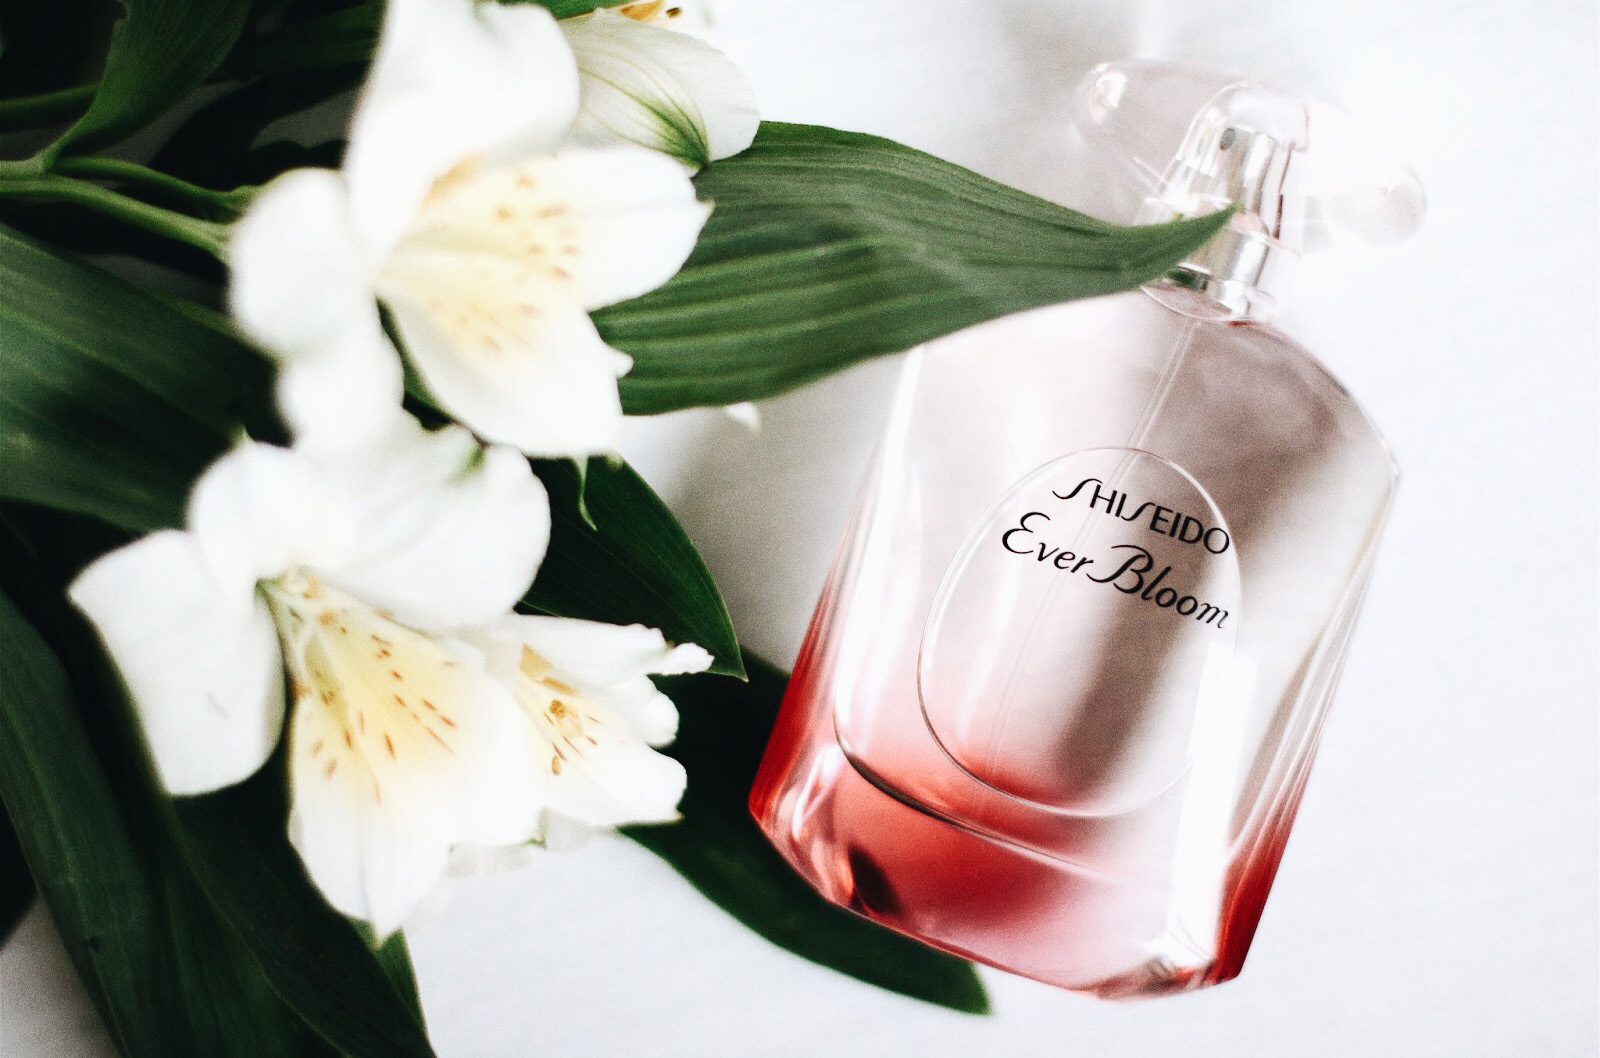 shiseido ever bloom parfum avis test